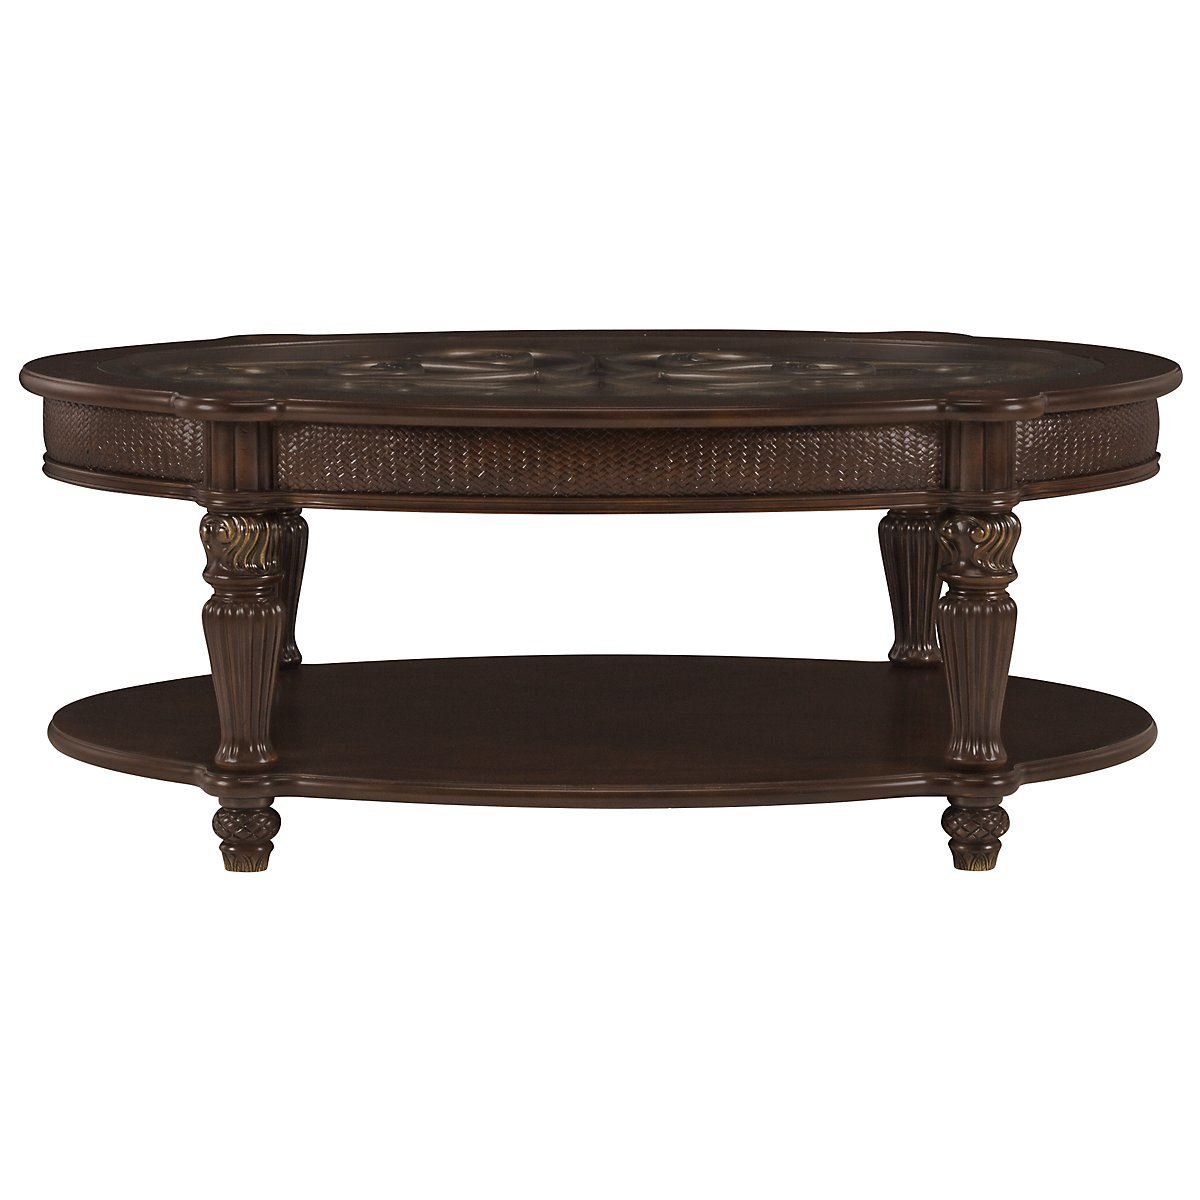 City furniture tradewinds dark tone metal oval coffee table for Small wood coffee table